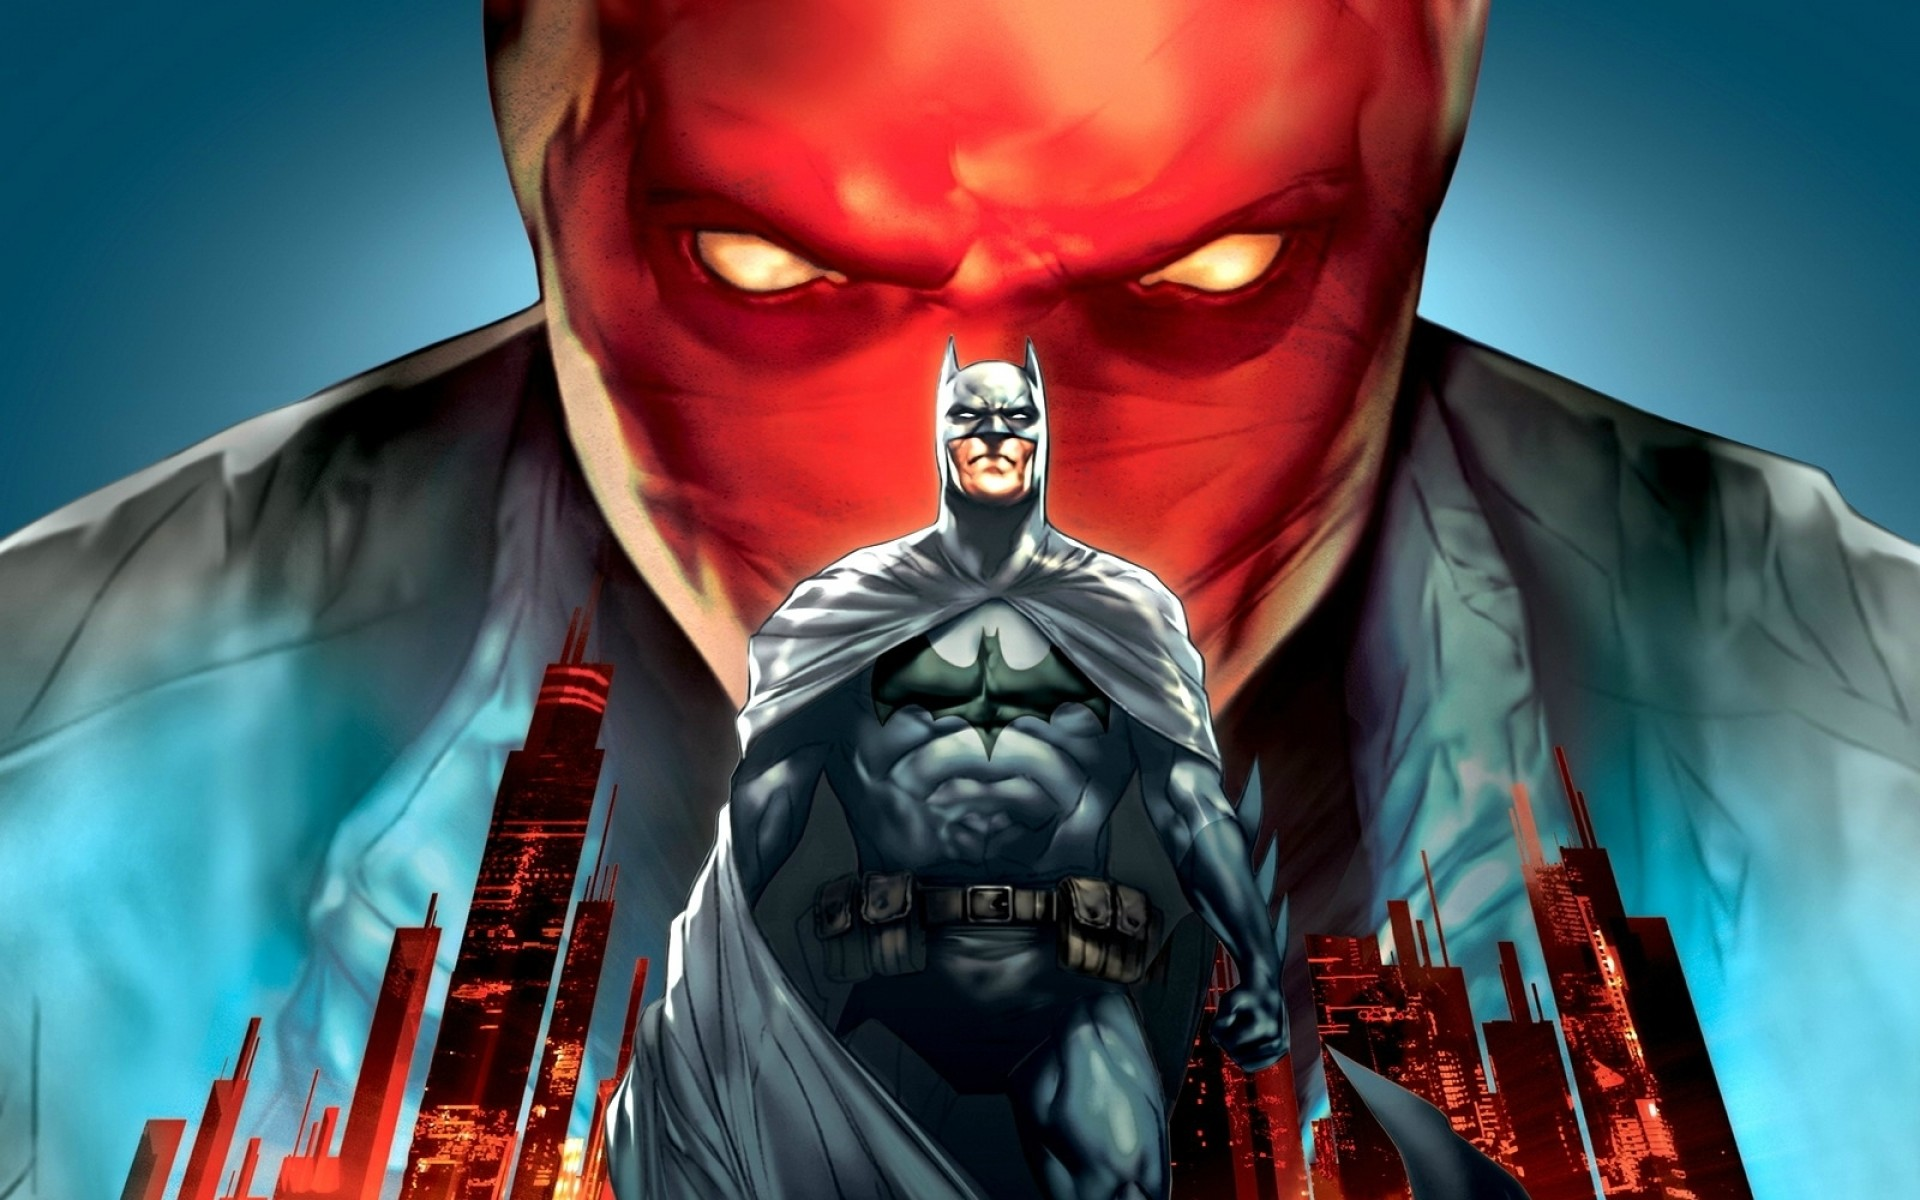 1920x1200 Batman DC Comics Superheroes Bruce Wayne Jason Todd Red Hood